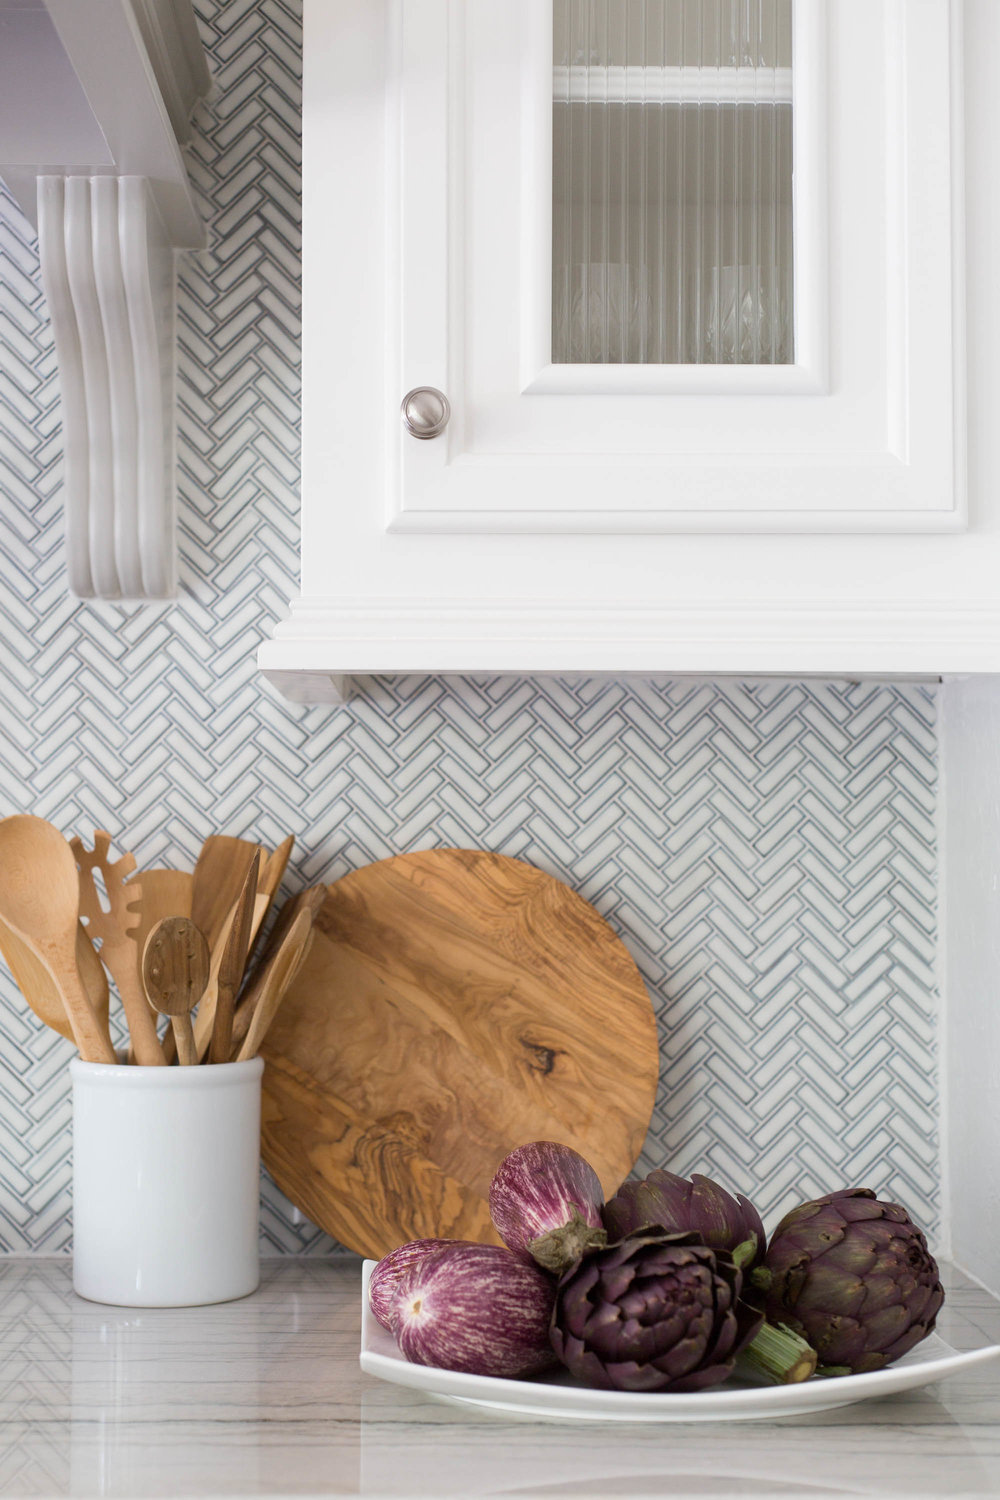 Kitchen Styling with herringbone backpslash -  Carla Aston, Photographer: Tori Aston #kitchenstyling